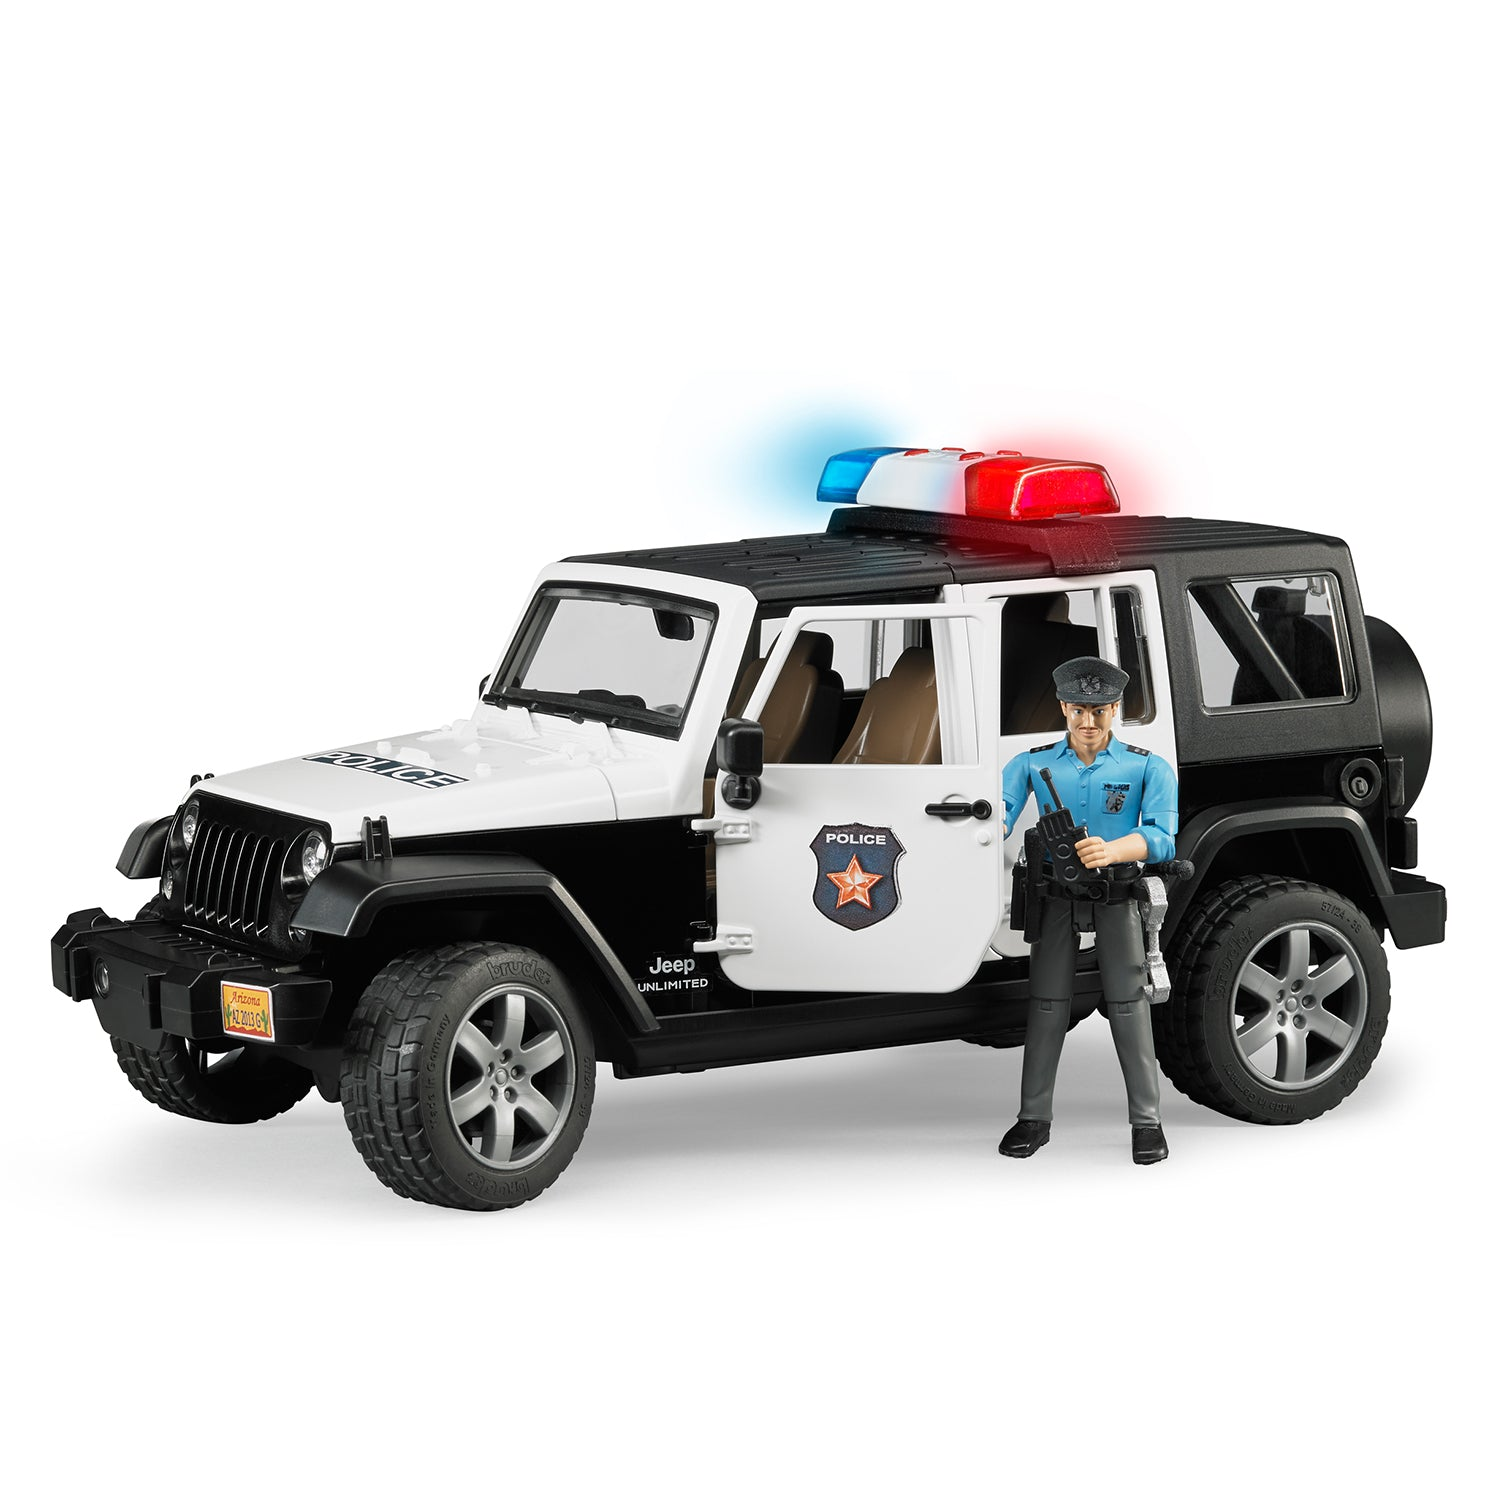 Jeep Wrangler Unlimited Rubicon Police Vehicle with Policeman and Accessories